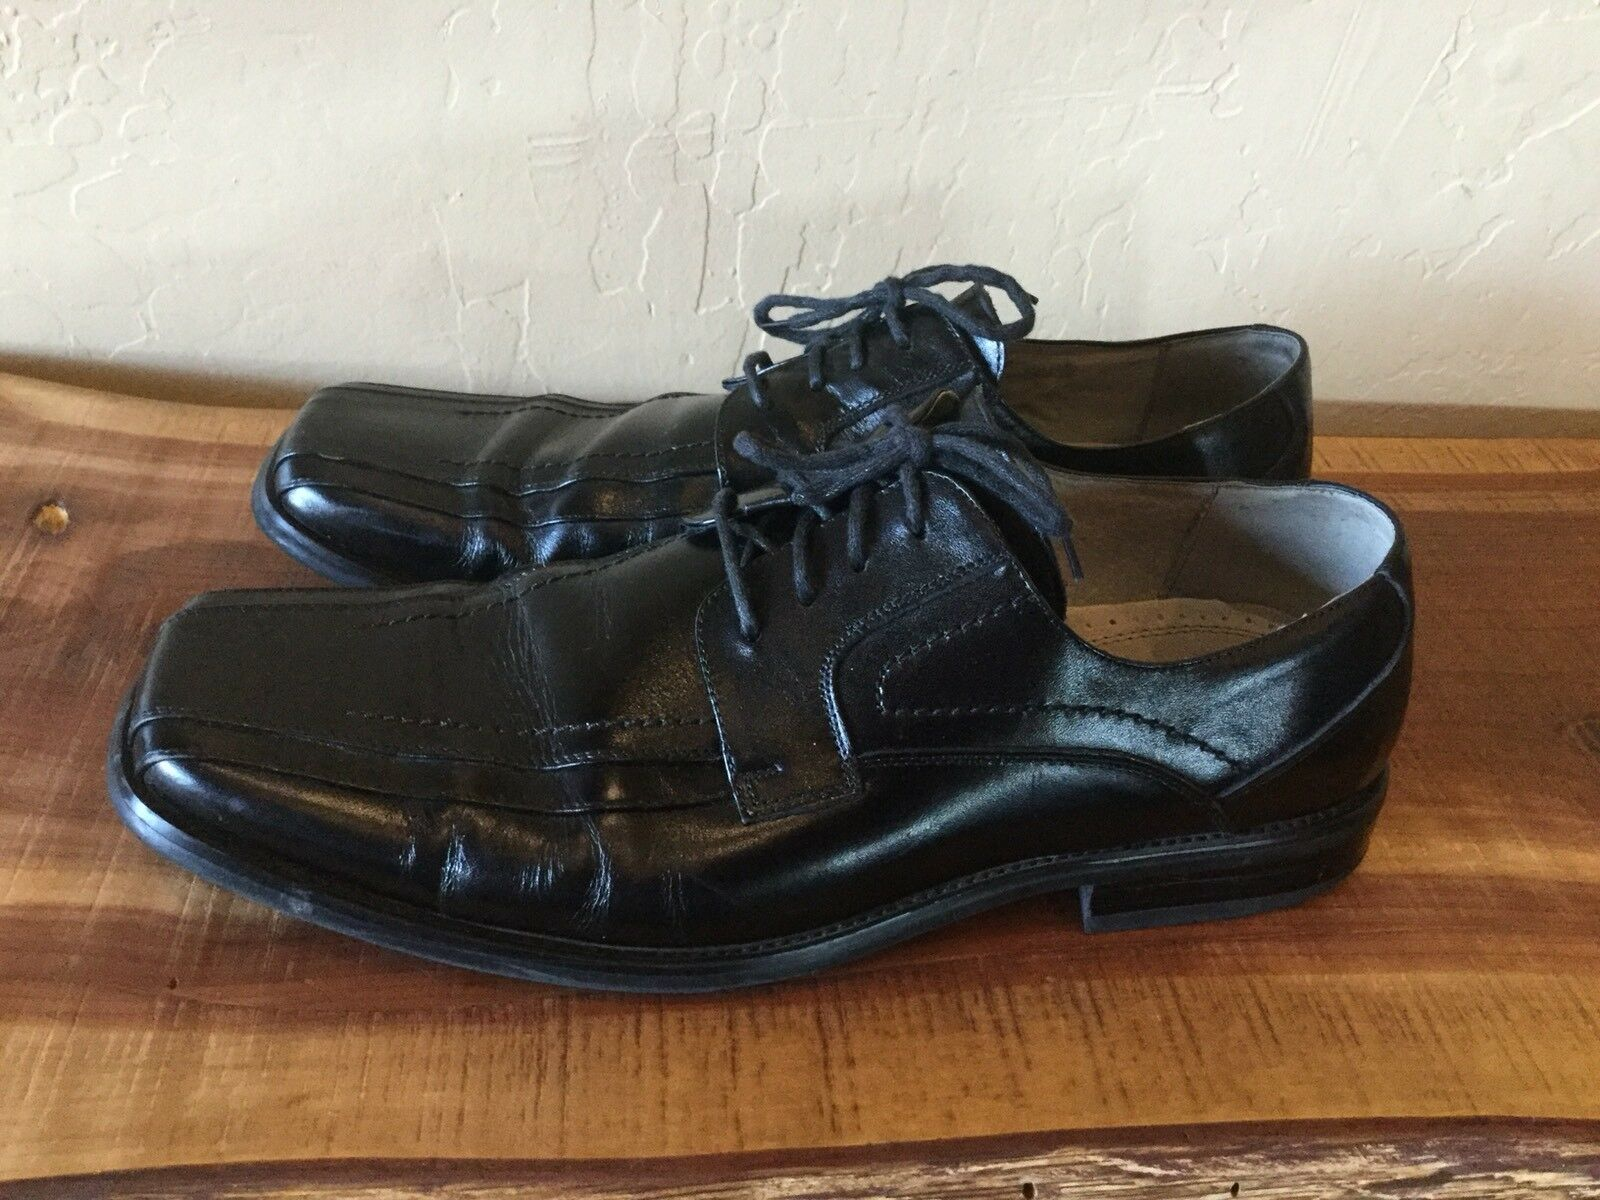 Stacy Leather Adams Men's 13M Black Leather Stacy Oxfords Dress Shoes 23274-01 //// 98535a